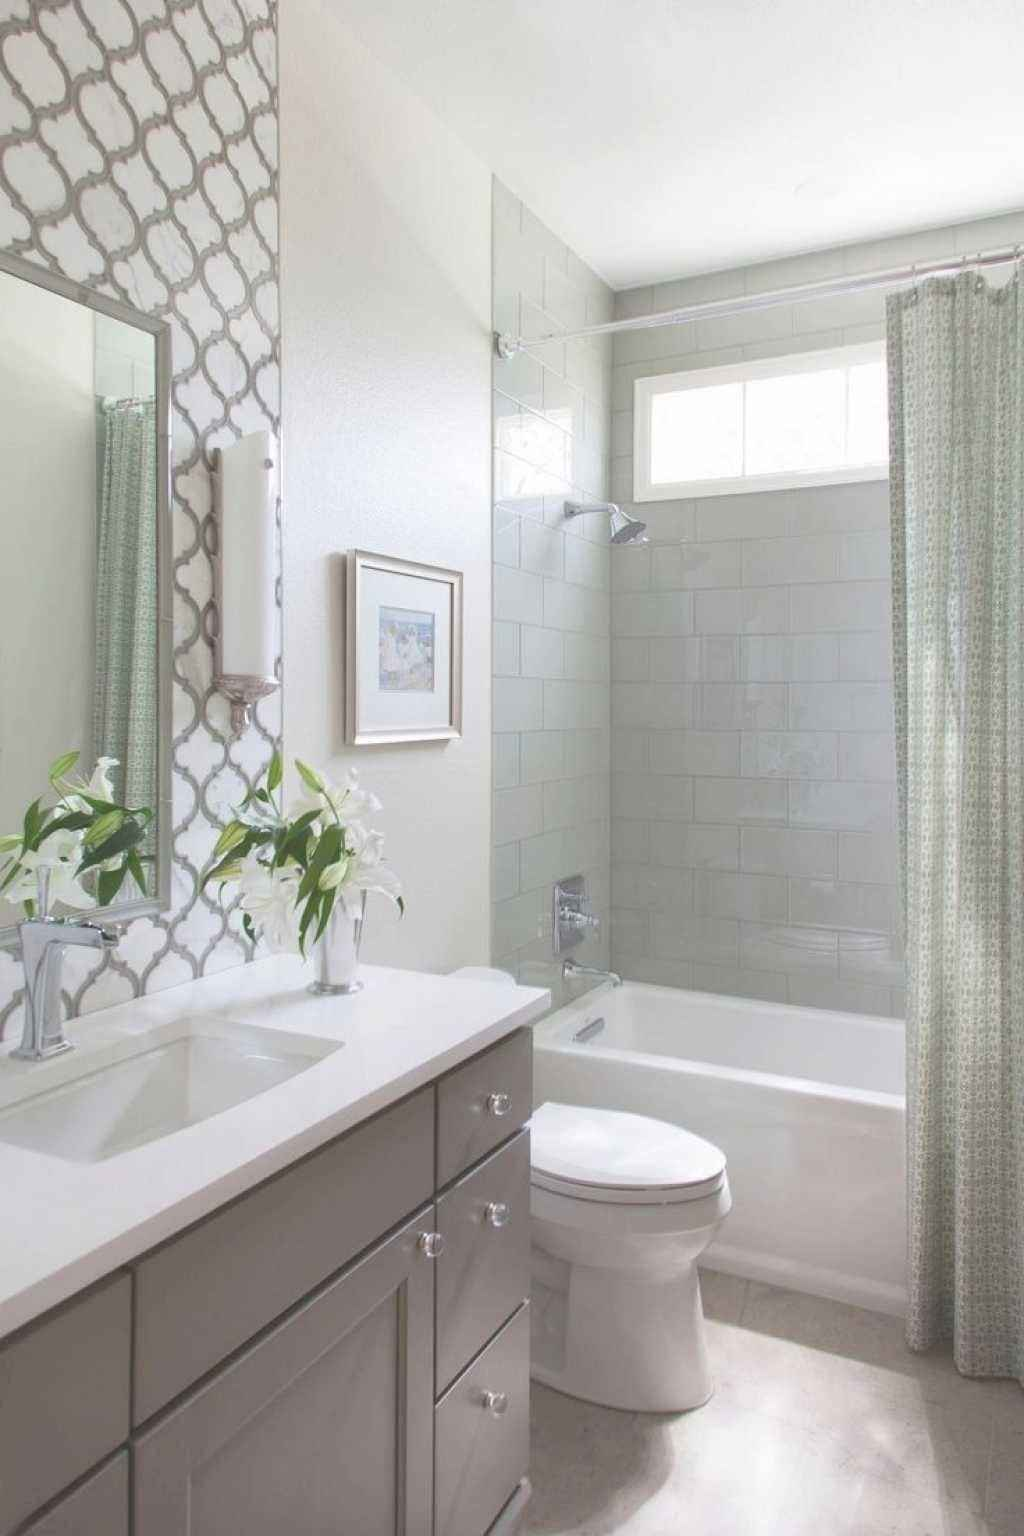 111 awesome small bathroom remodel ideas on a budget (1)